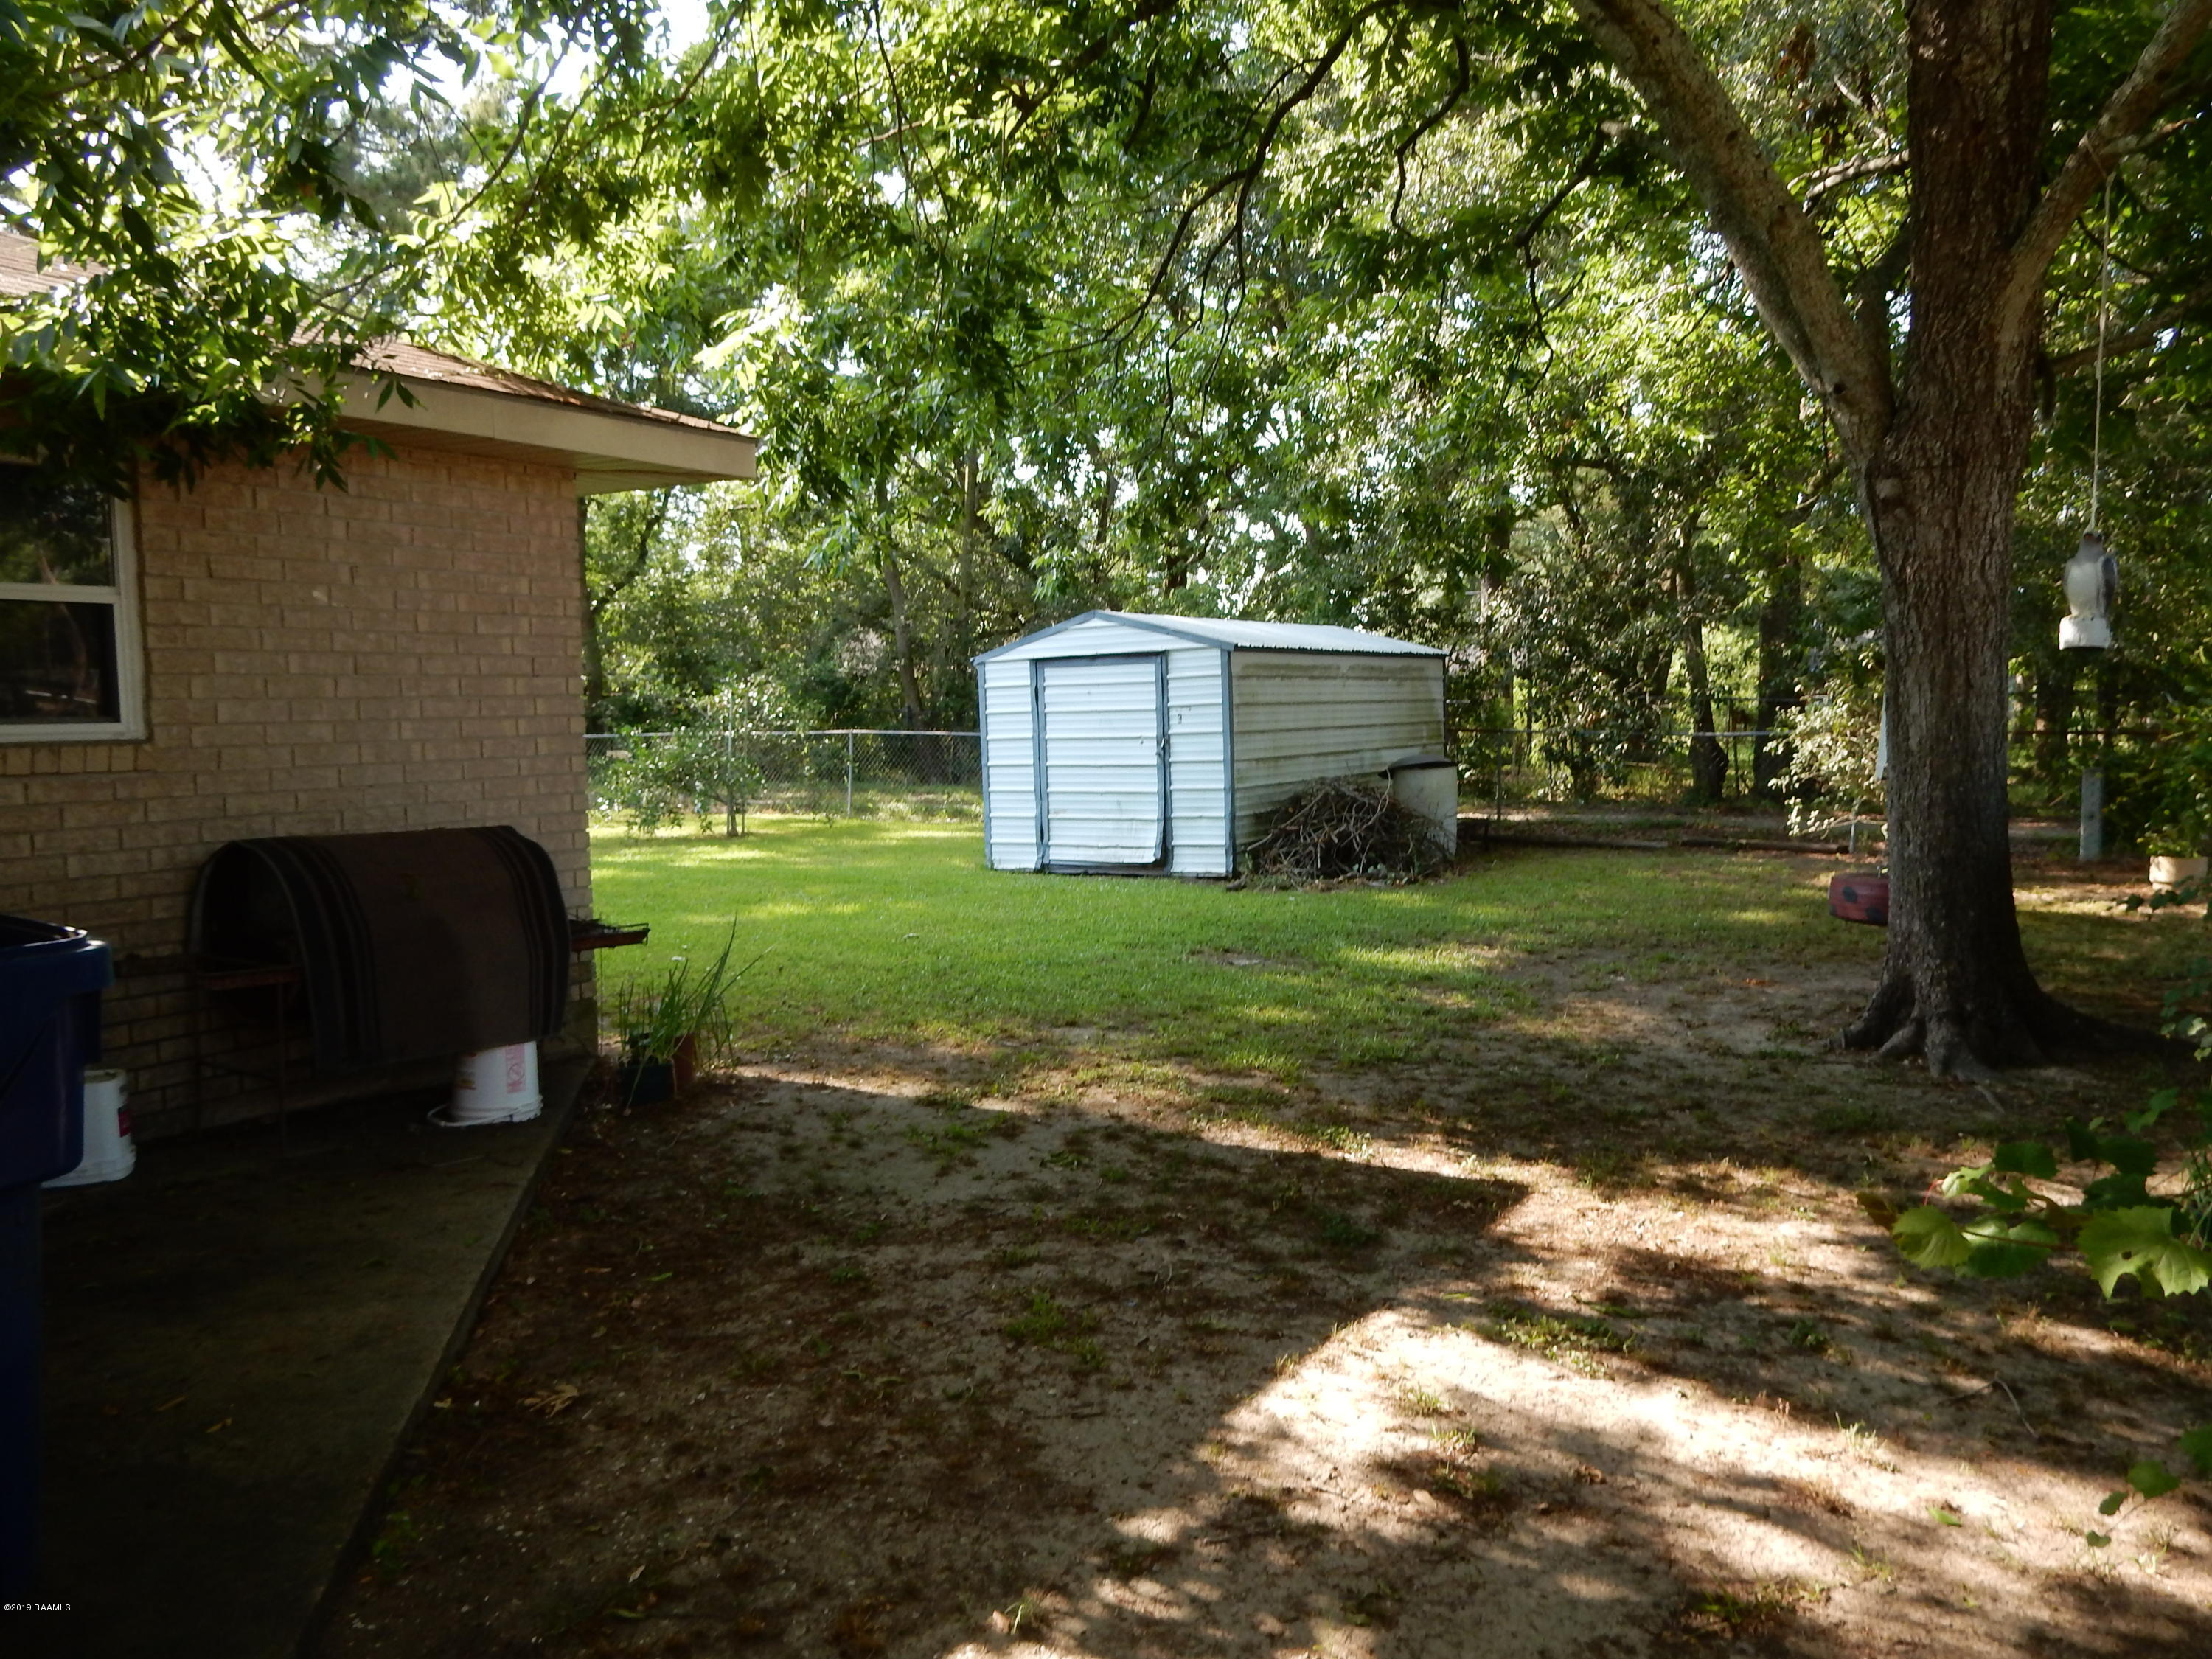 2000 Dudley Street W, Eunice, LA 70535 Photo #2